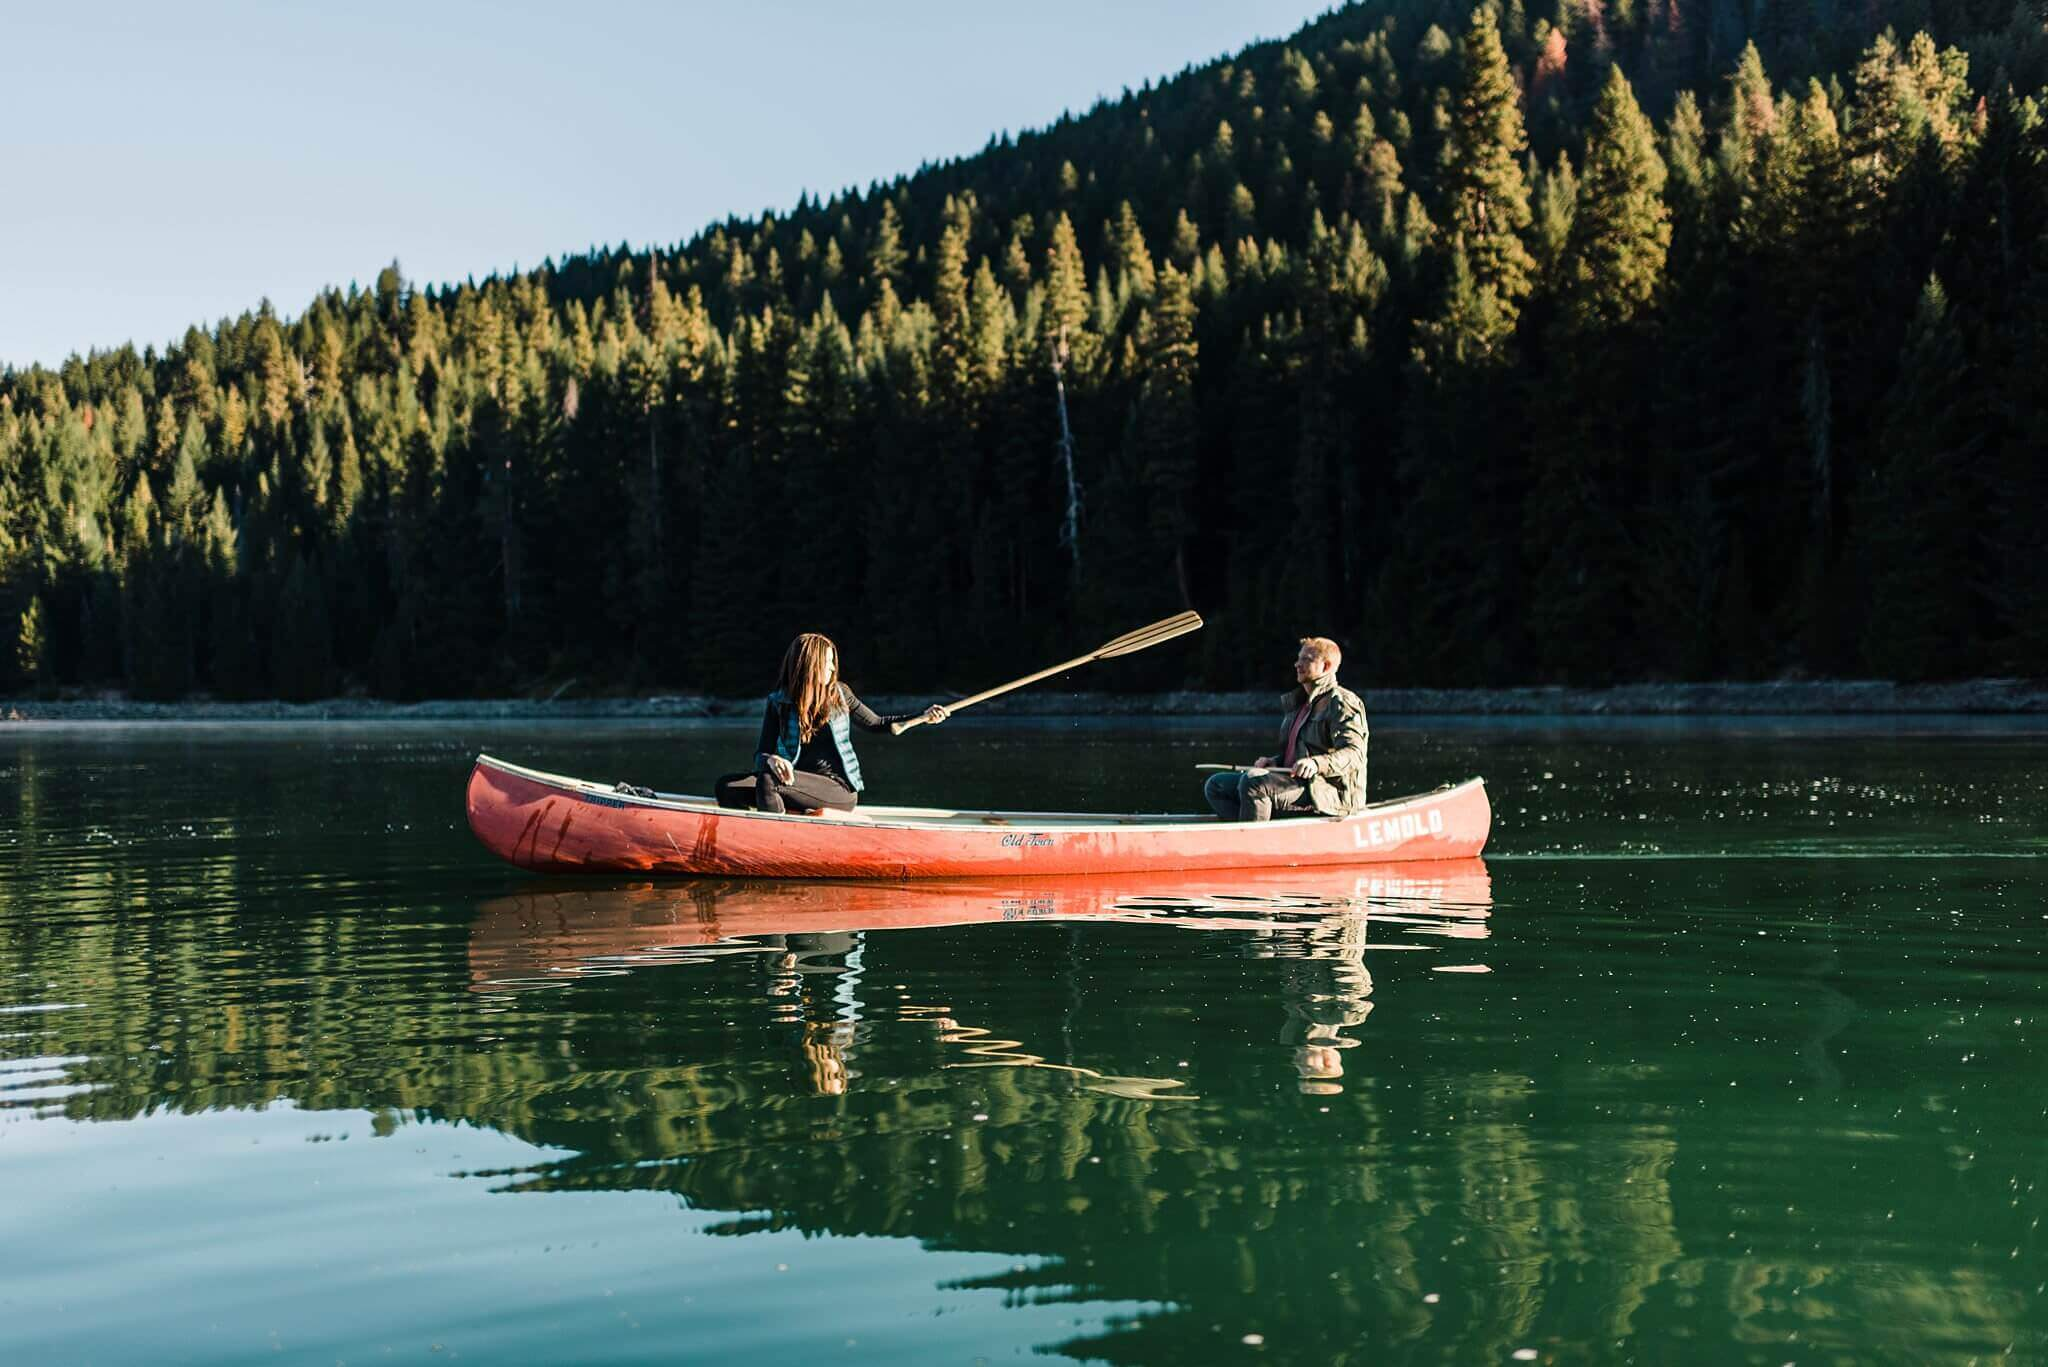 Canoe-Lake-Adventure-Engagement-Session-Oregon-Lemolo-S-Photography_0012.jpg